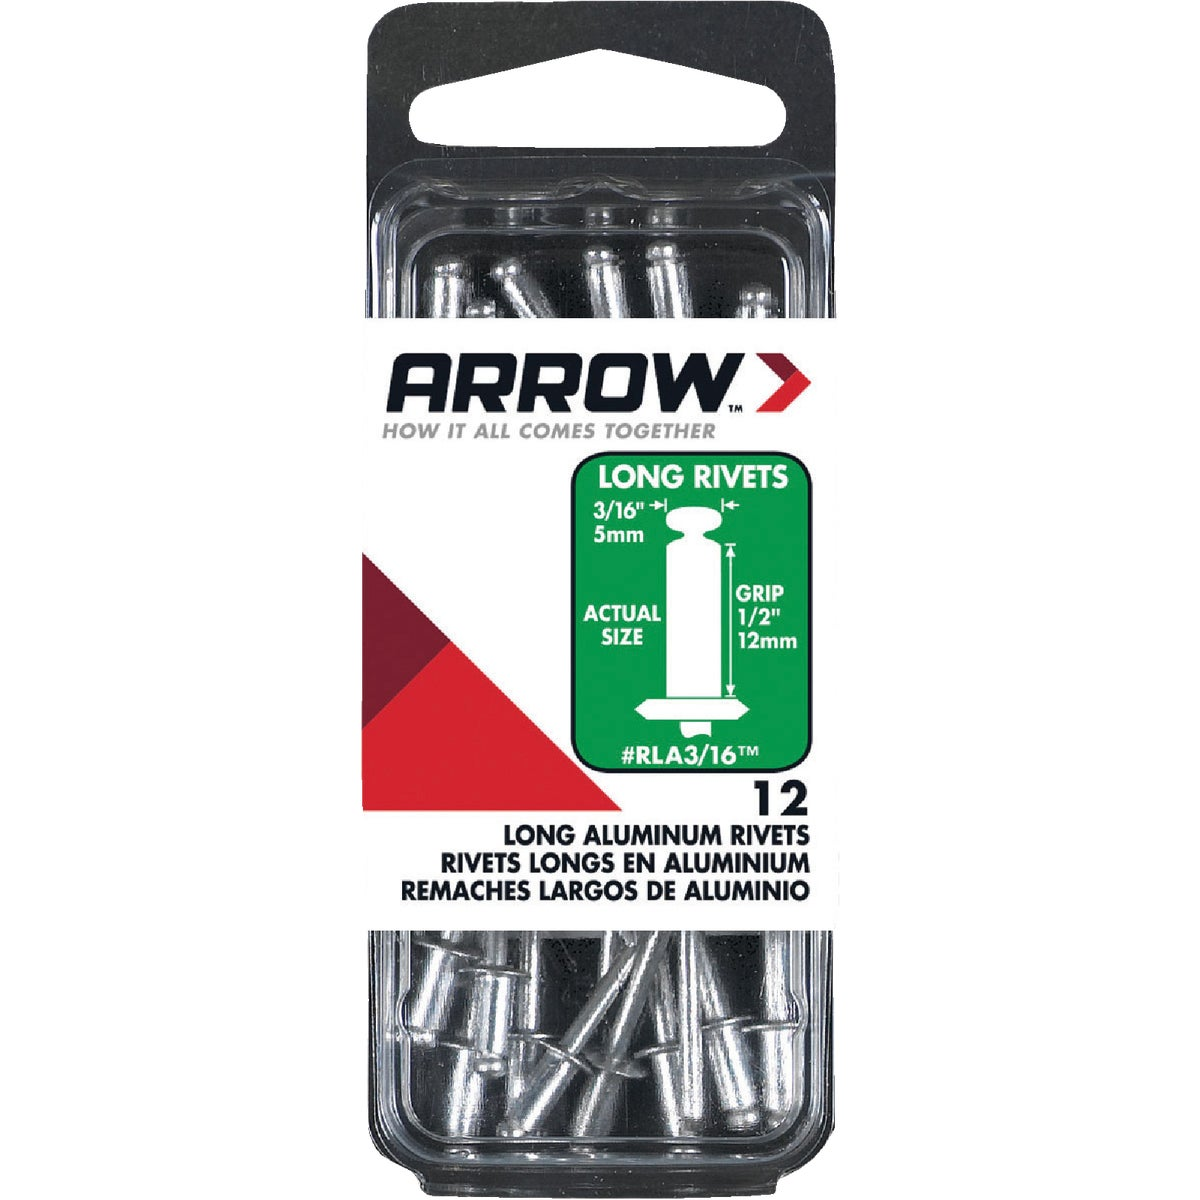 3/16X1/2 ALUM RIVET - RLA3/16 by Arrow Fastener Co